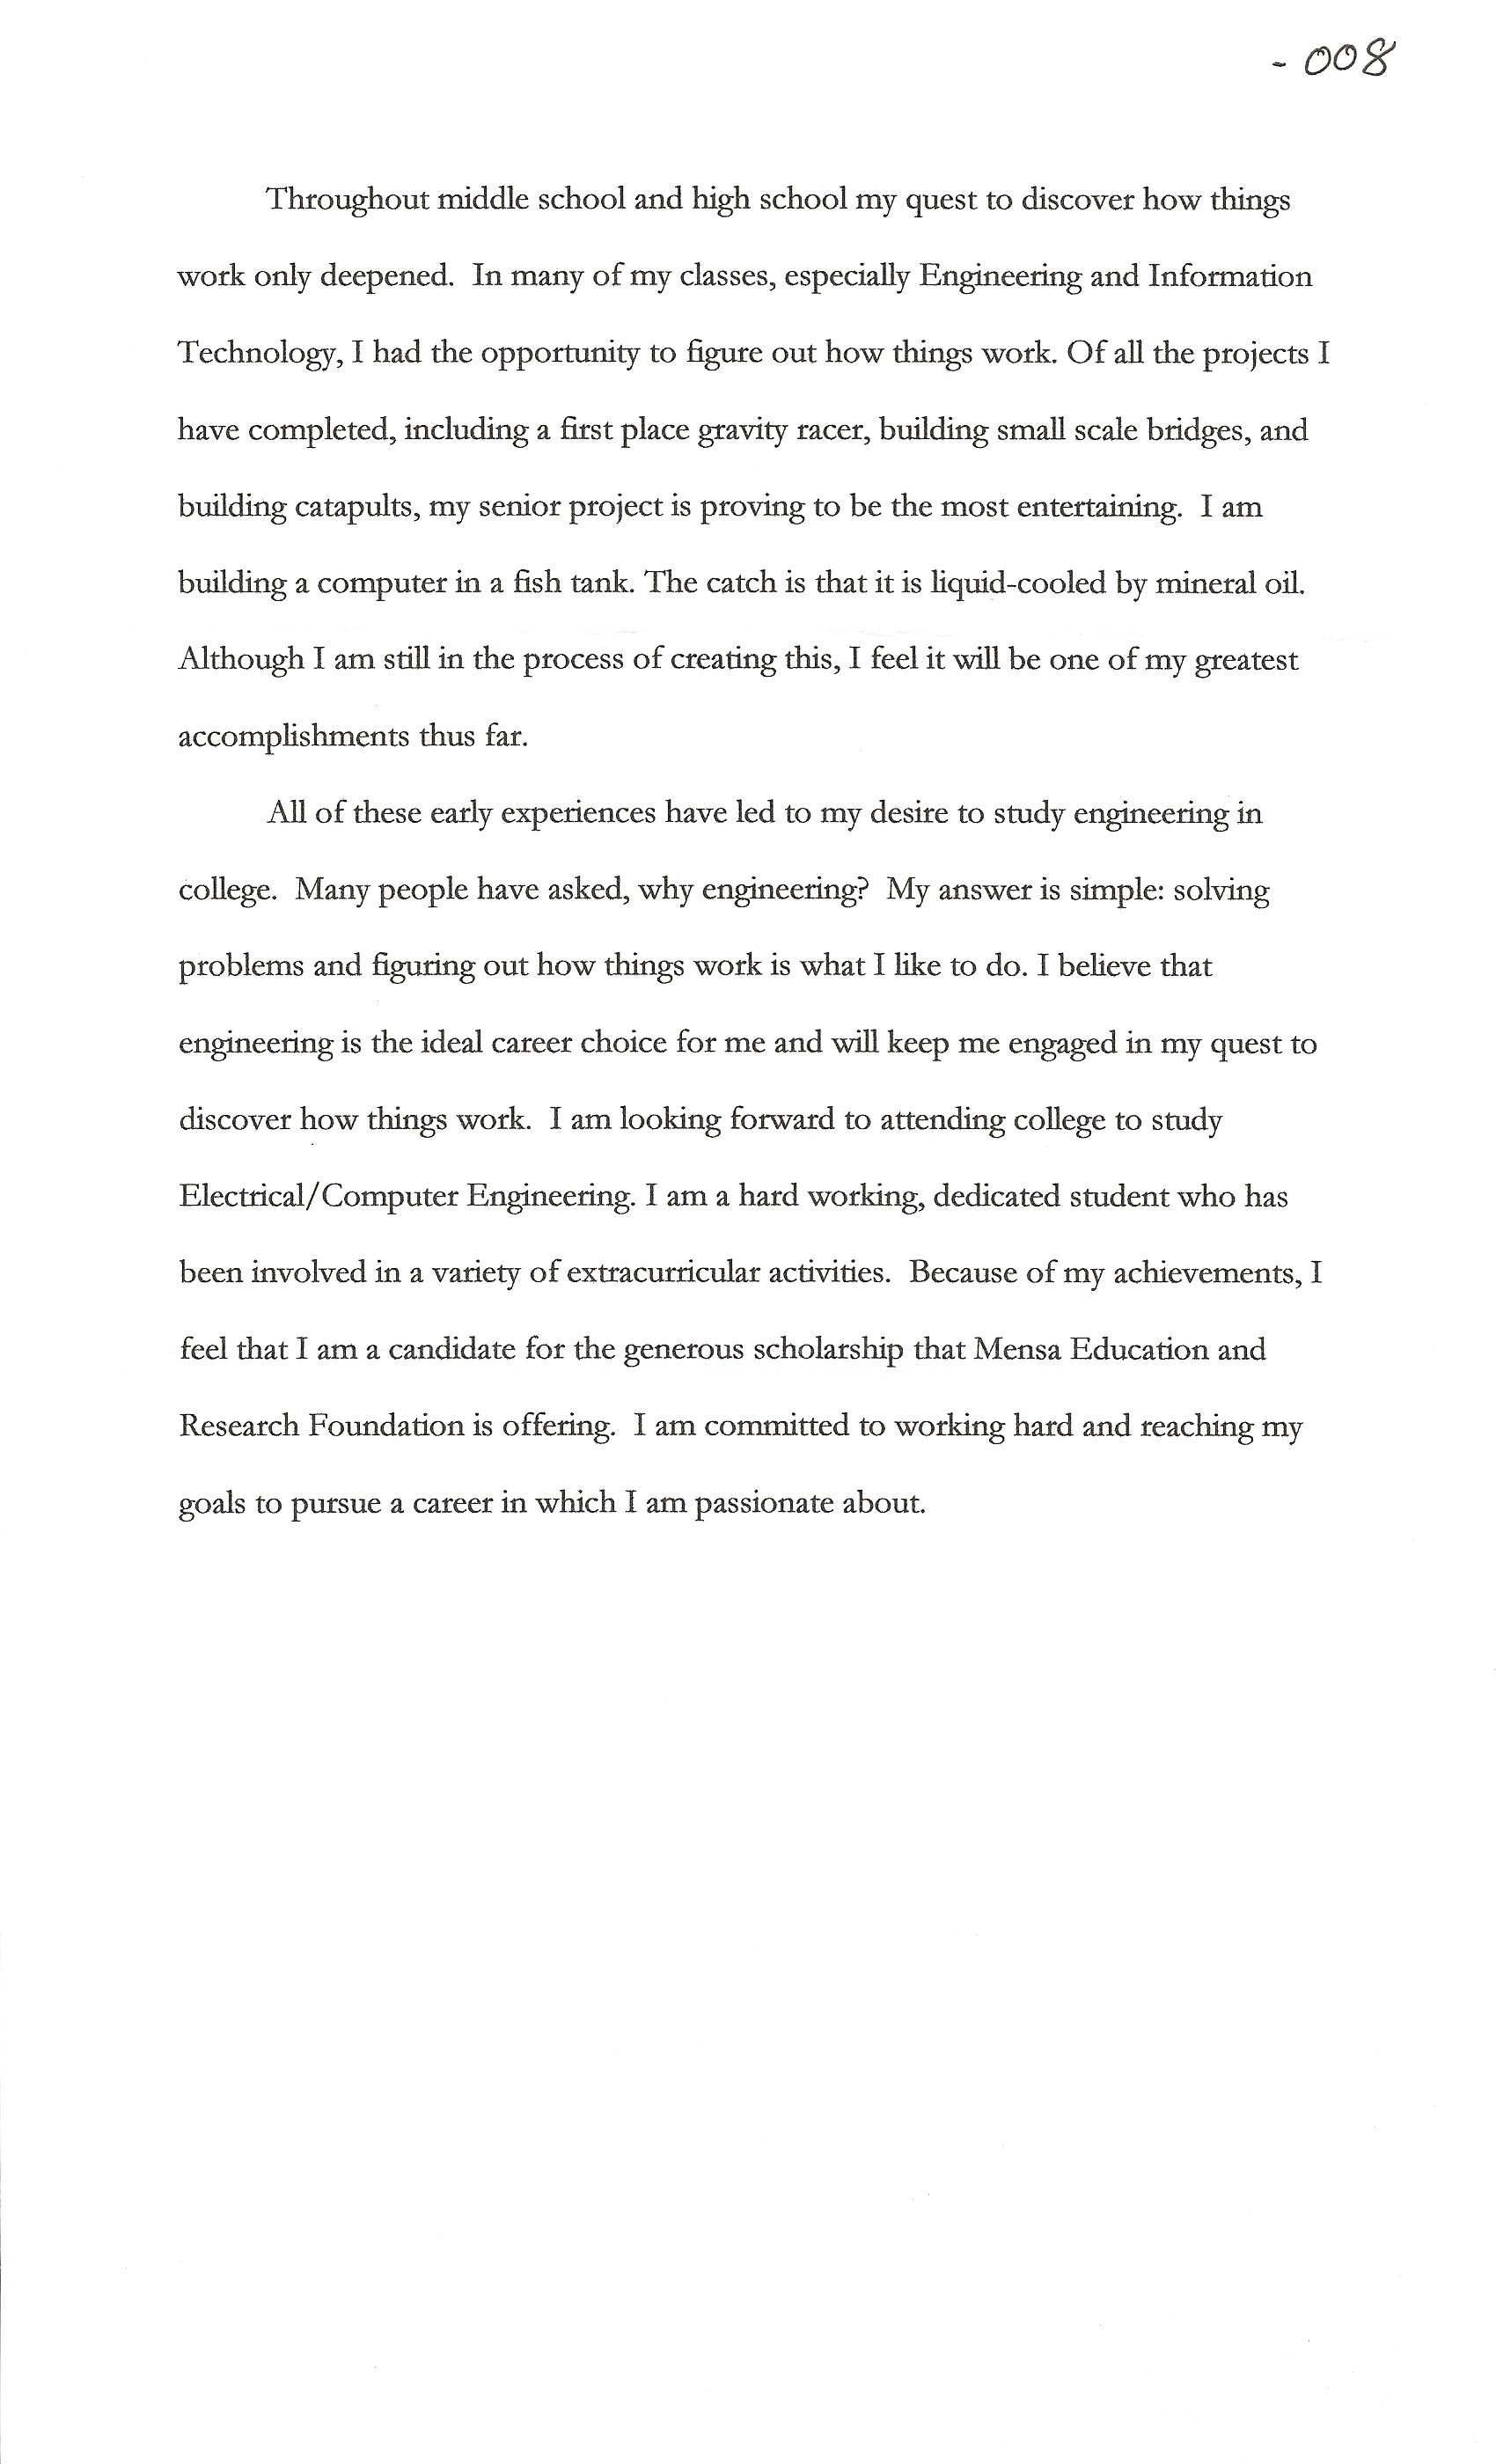 example of a dbq essay sample college essay for engineering ...